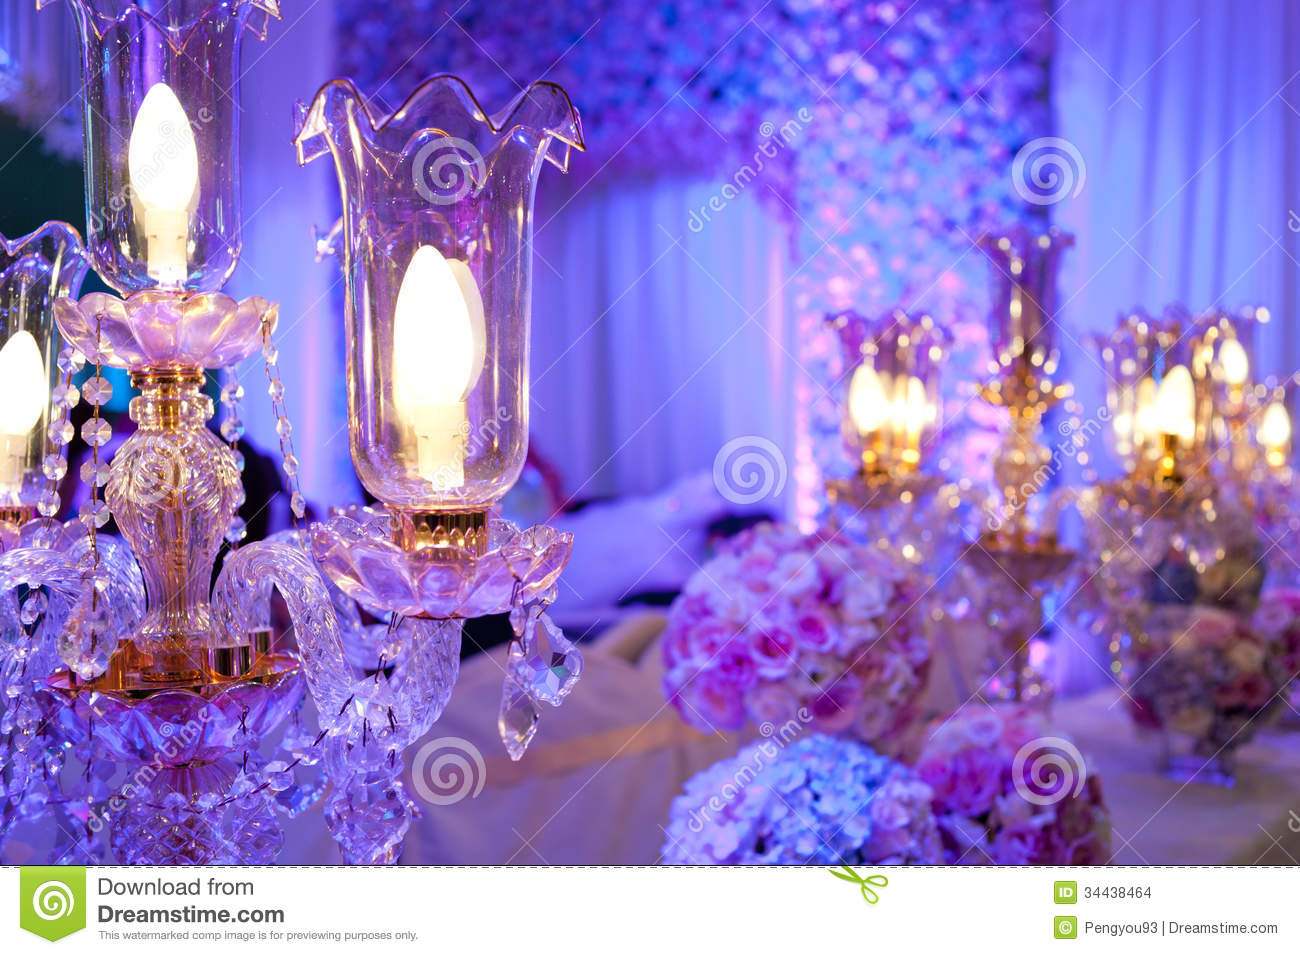 crystal decorations for weddings lighting stock photo image of violet 3207